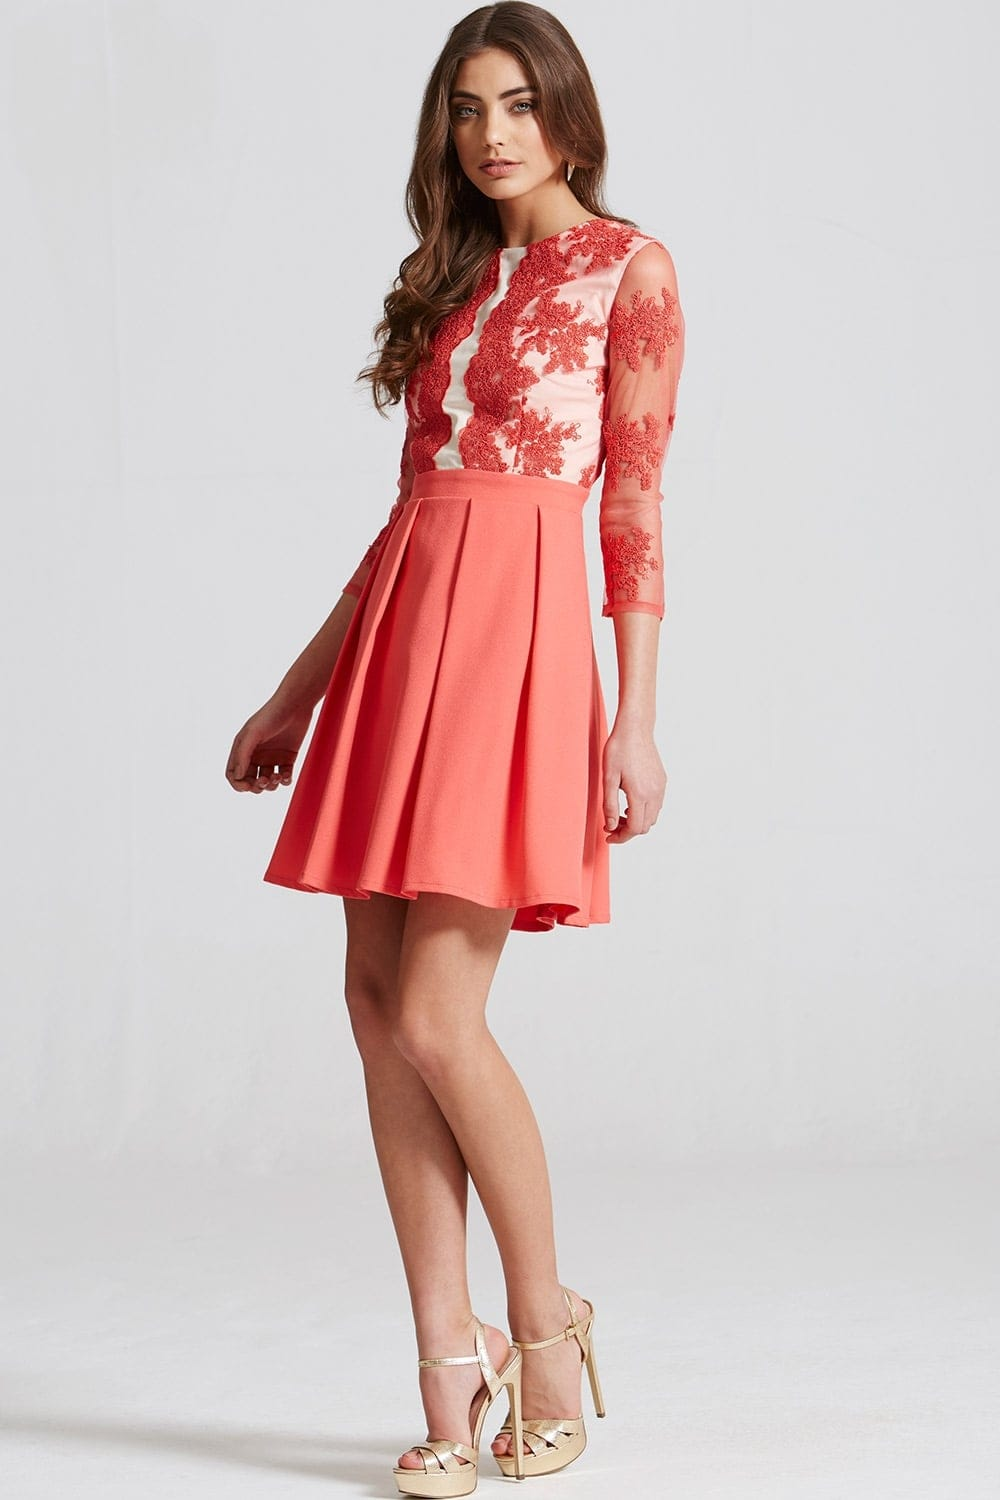 Coral Lace Fit And Flare Mini Dress From Little Mistress Uk